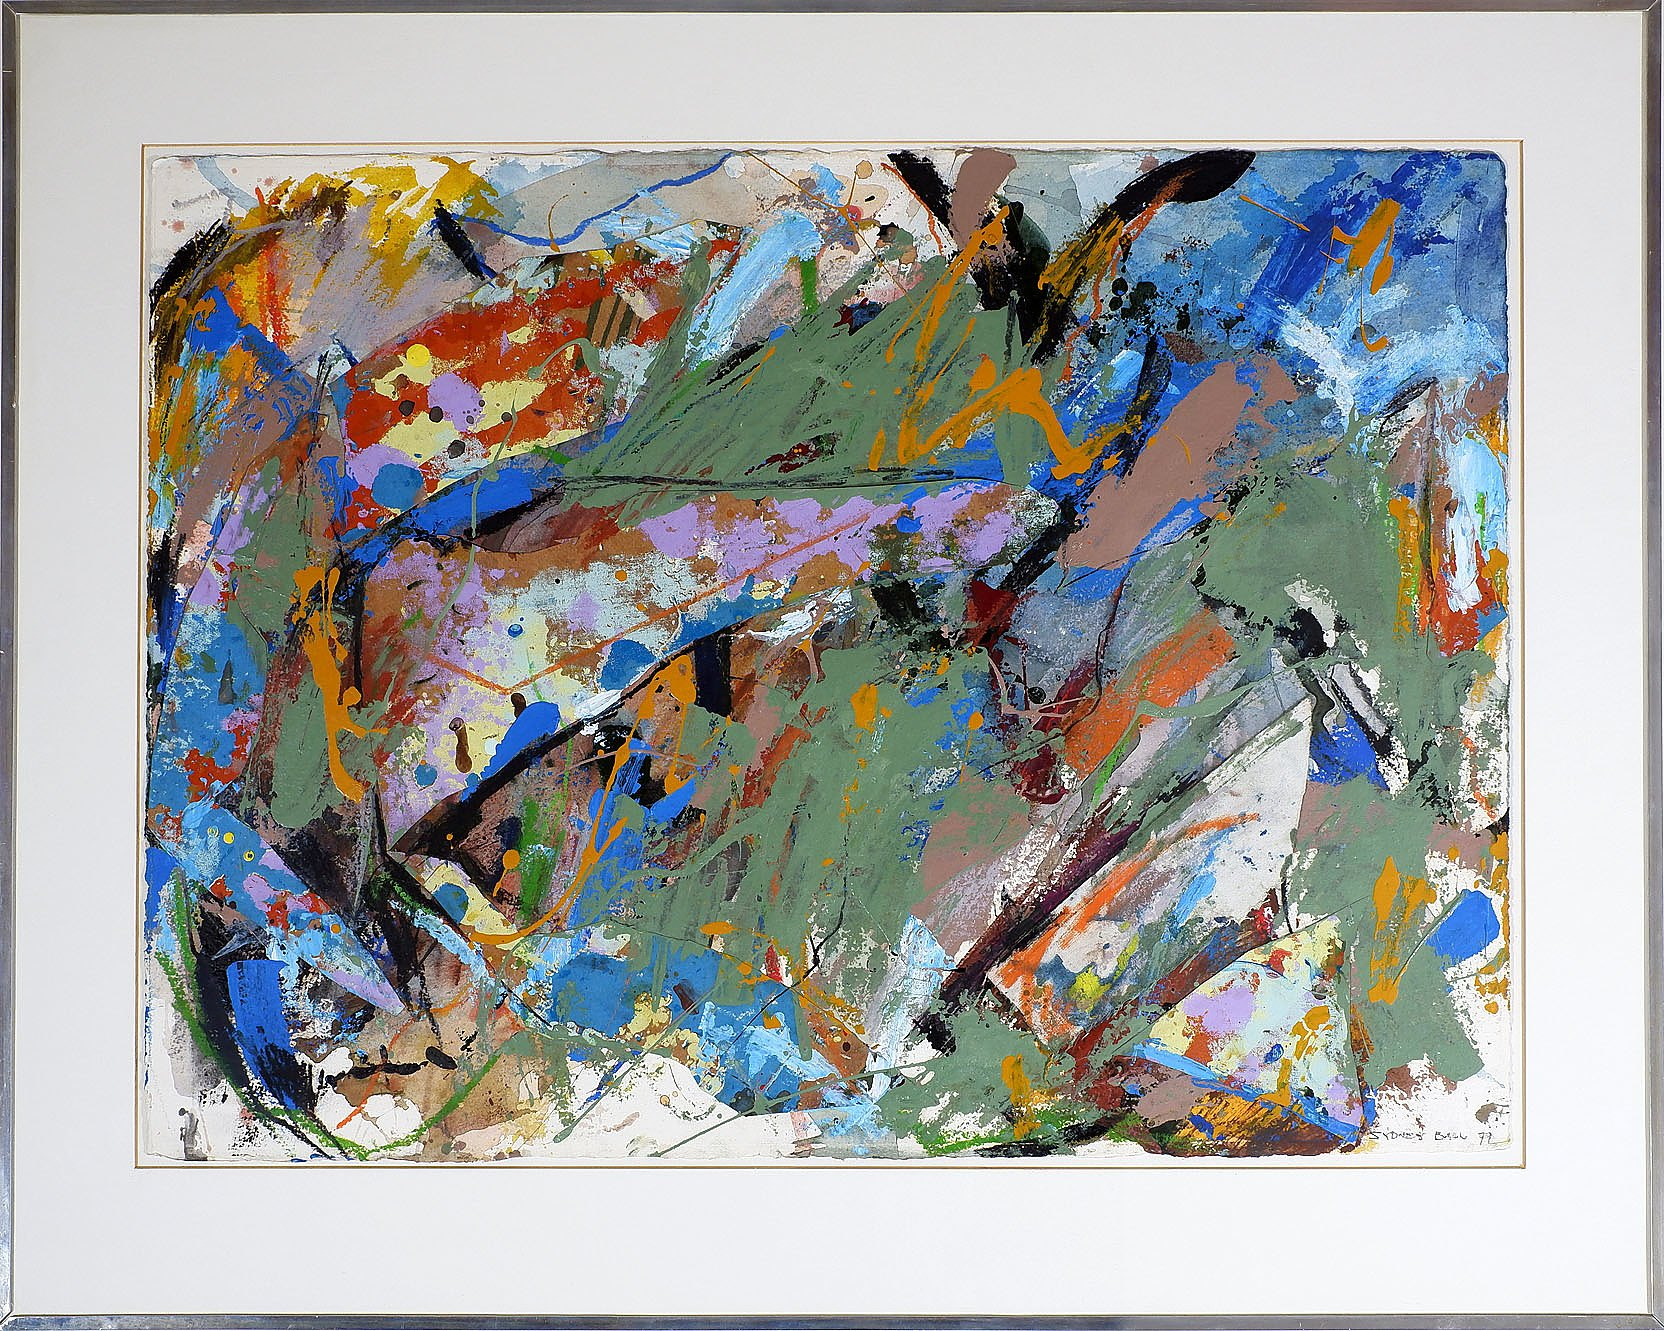 'Sydney Ball (b. 1933), Crystal Falls 1977, Collage and Mixed Media on Arches Paper'